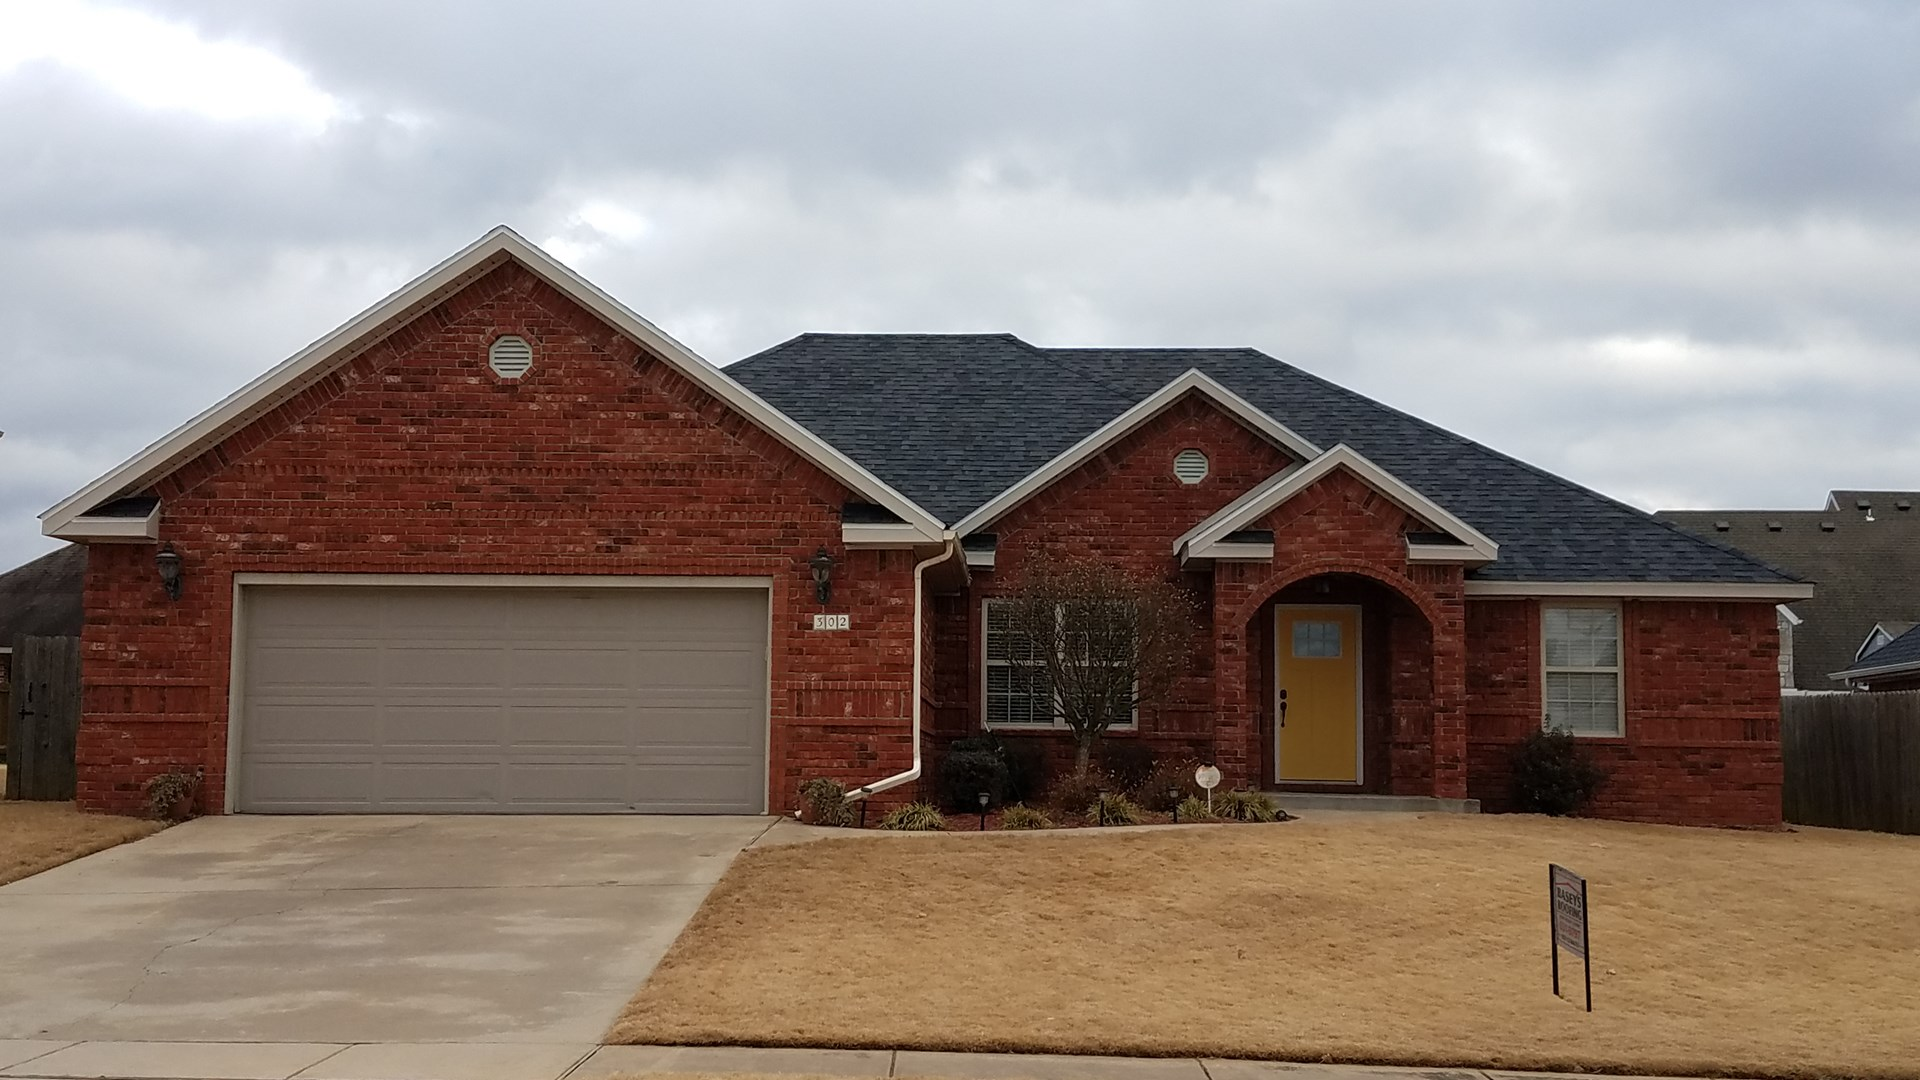 Charming 3 bed/2 bath home at 302 W Hayden Blvd, Rogers, AR